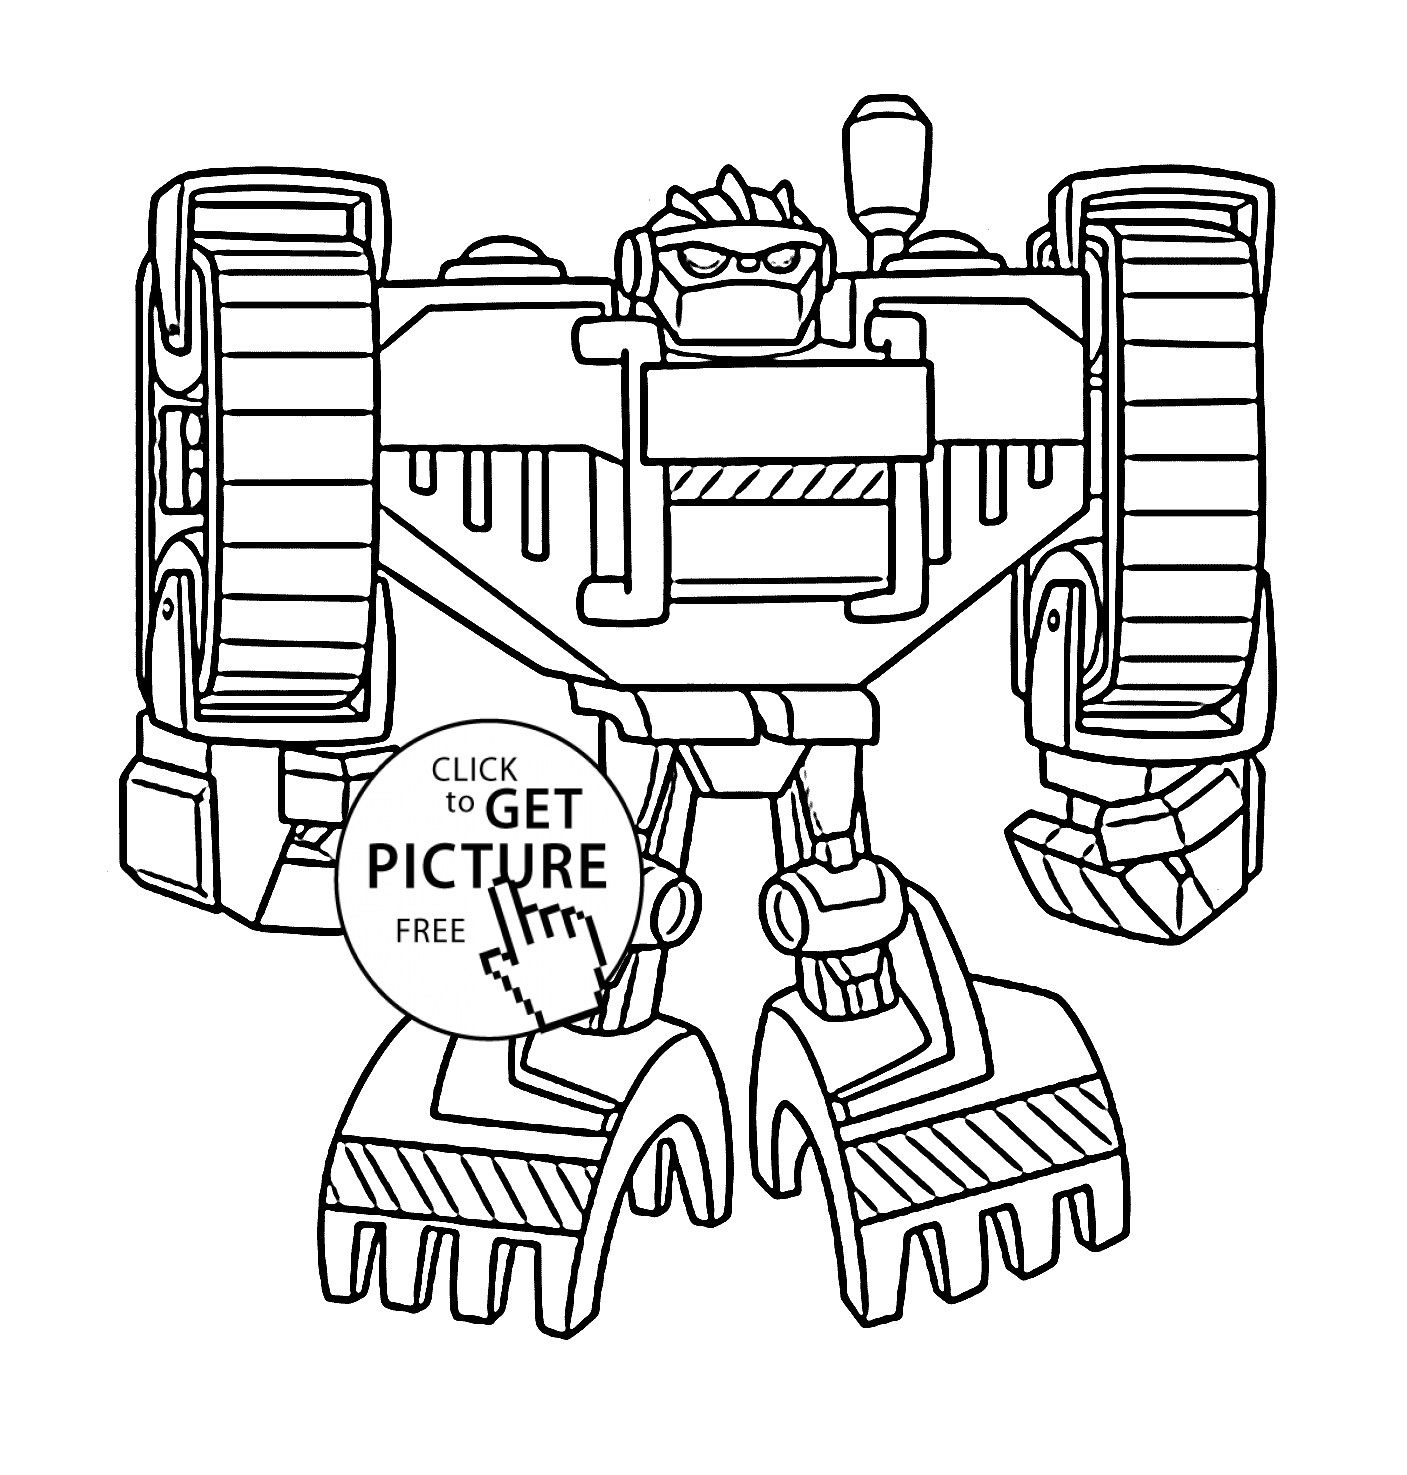 22 Brilliant Image Of Rescue Bots Coloring Pages Kolorowanki